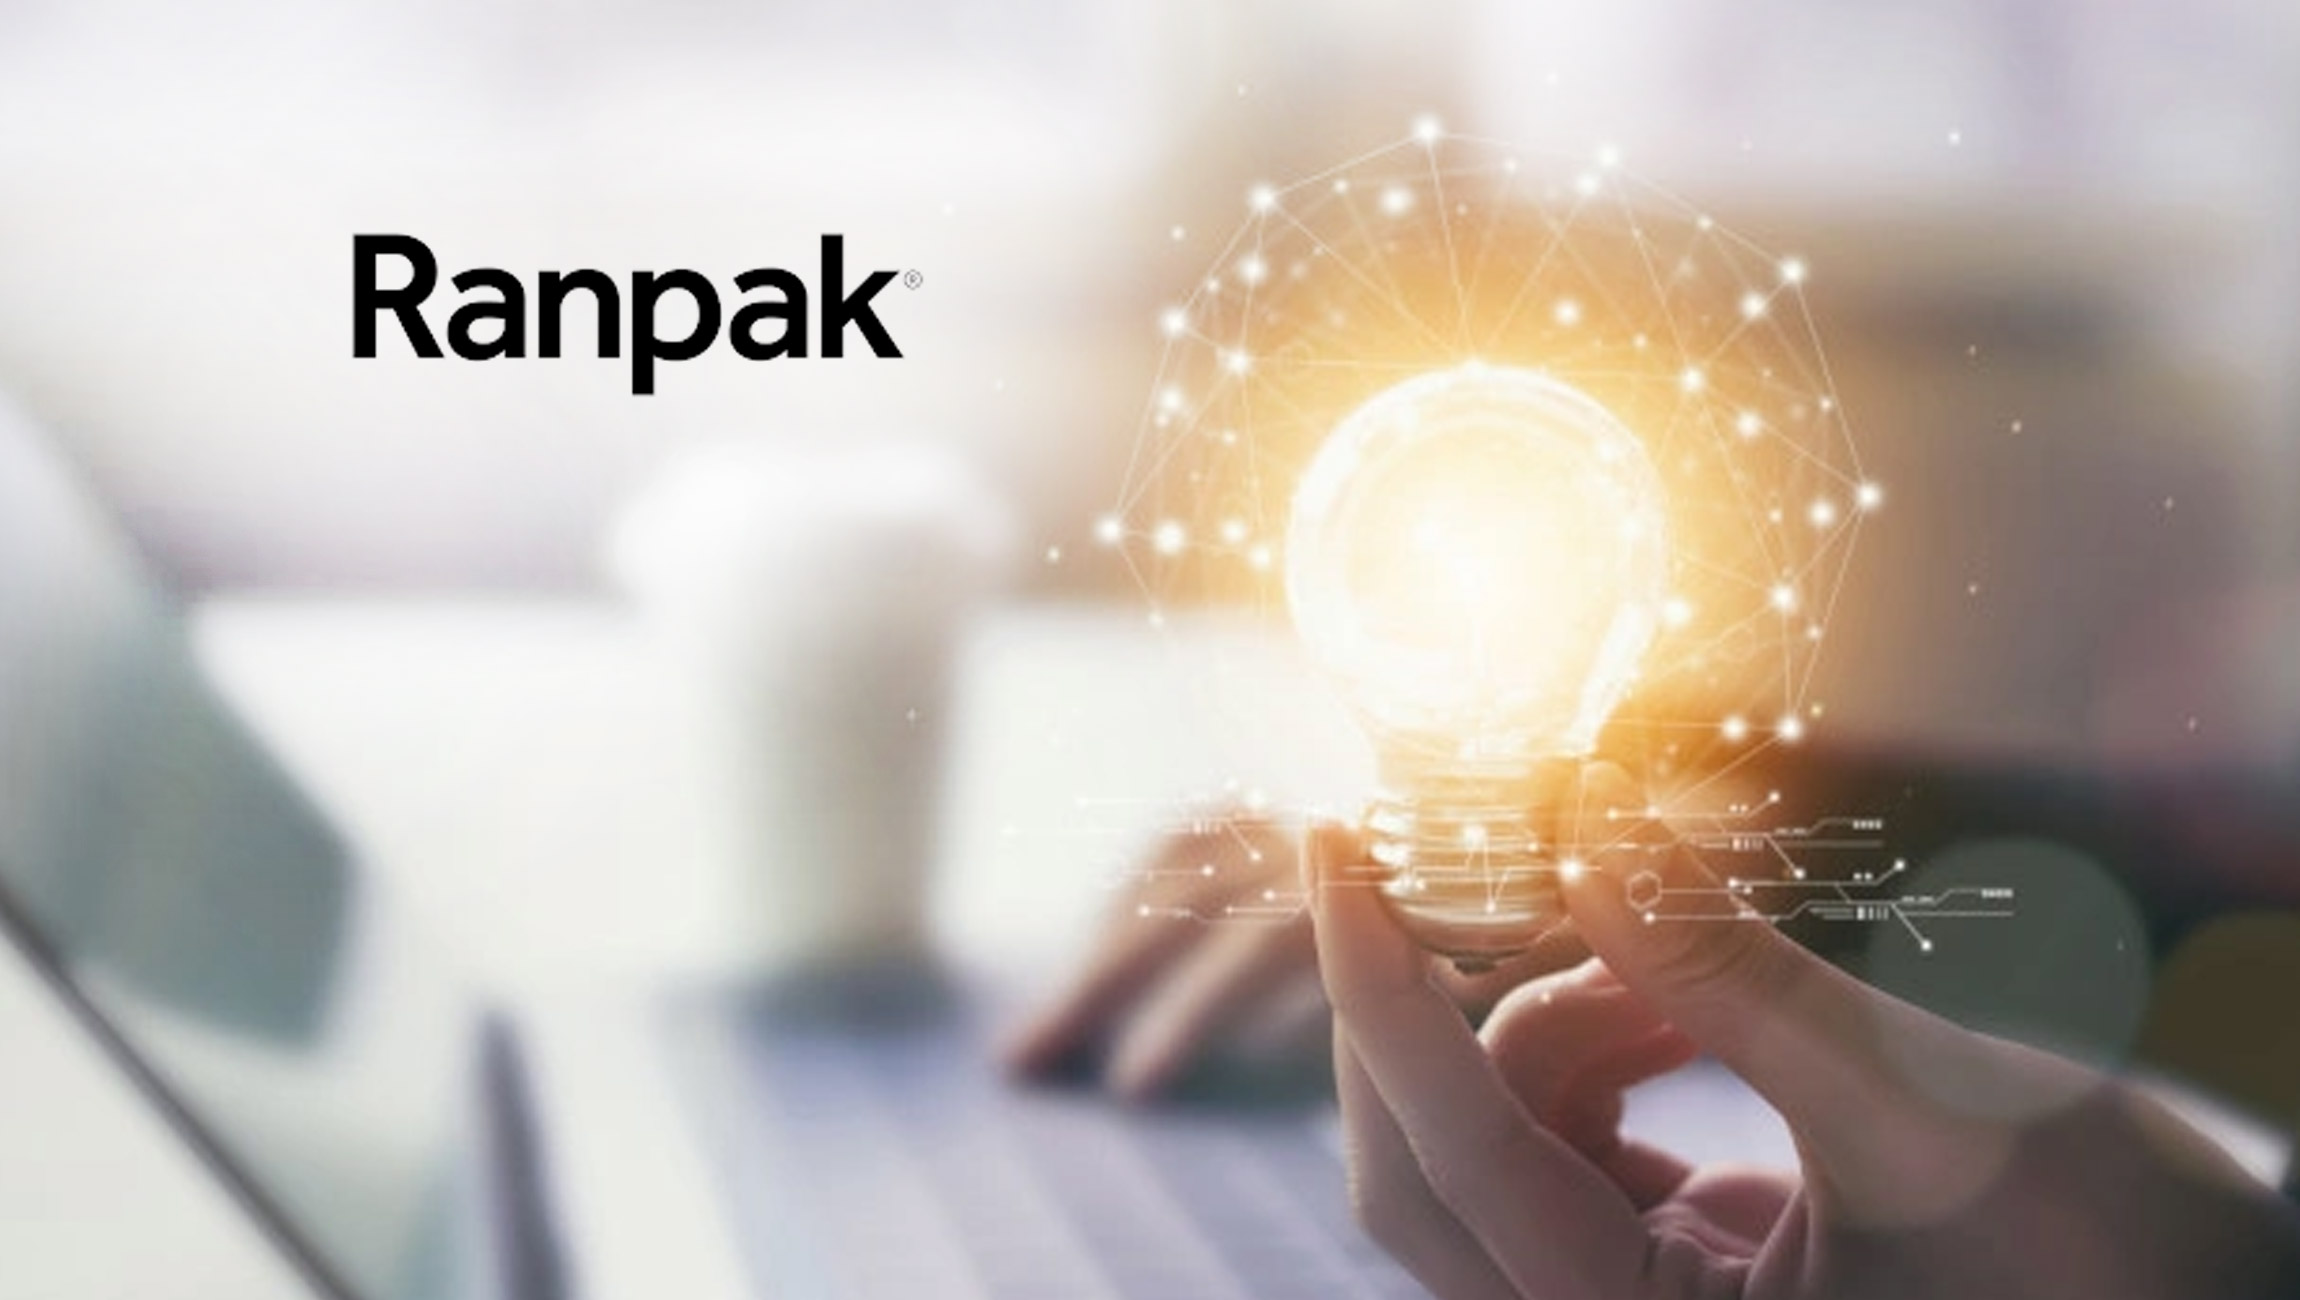 Ranpak Holdings Corp. Reports Second Quarter 2021 Financial Results